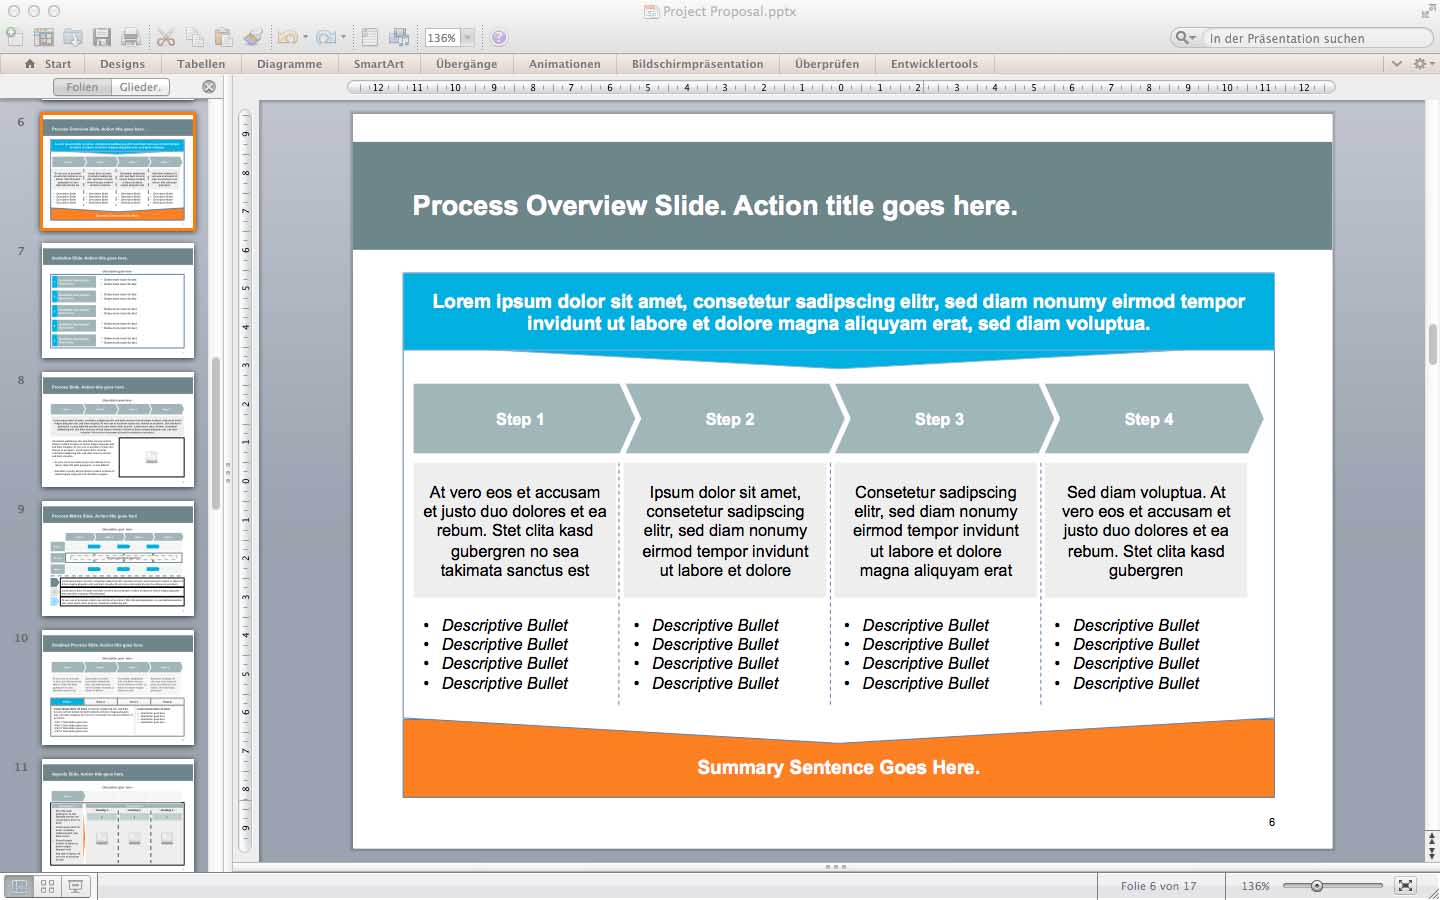 007 Powerpoint Presentation Format For Research Paper Project Proposal Template Templates Pro Mac Unique Sample Ppt Full